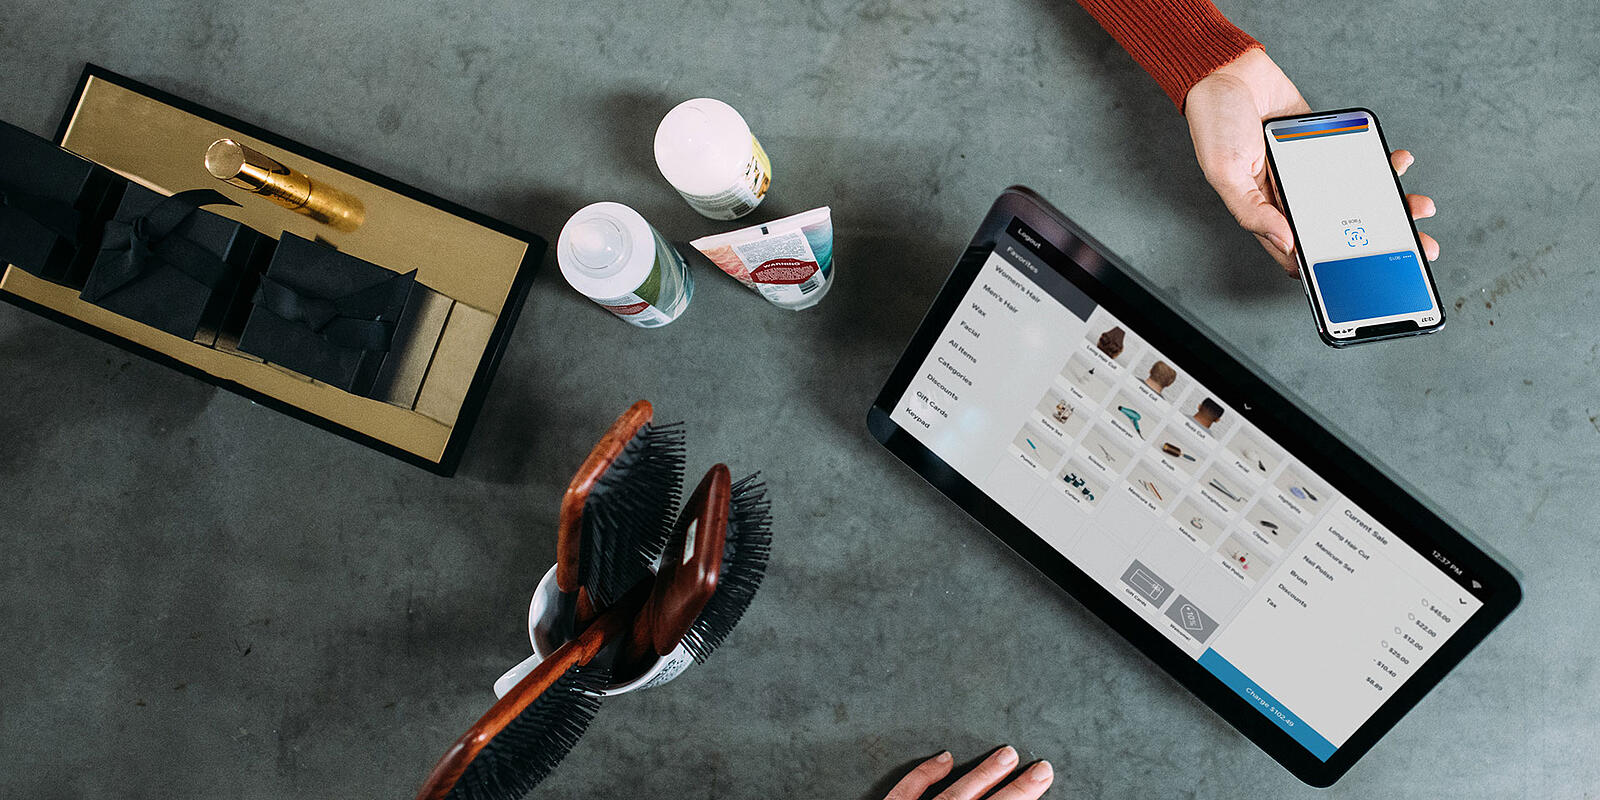 How to get ready for the rise of mobile payments in retail